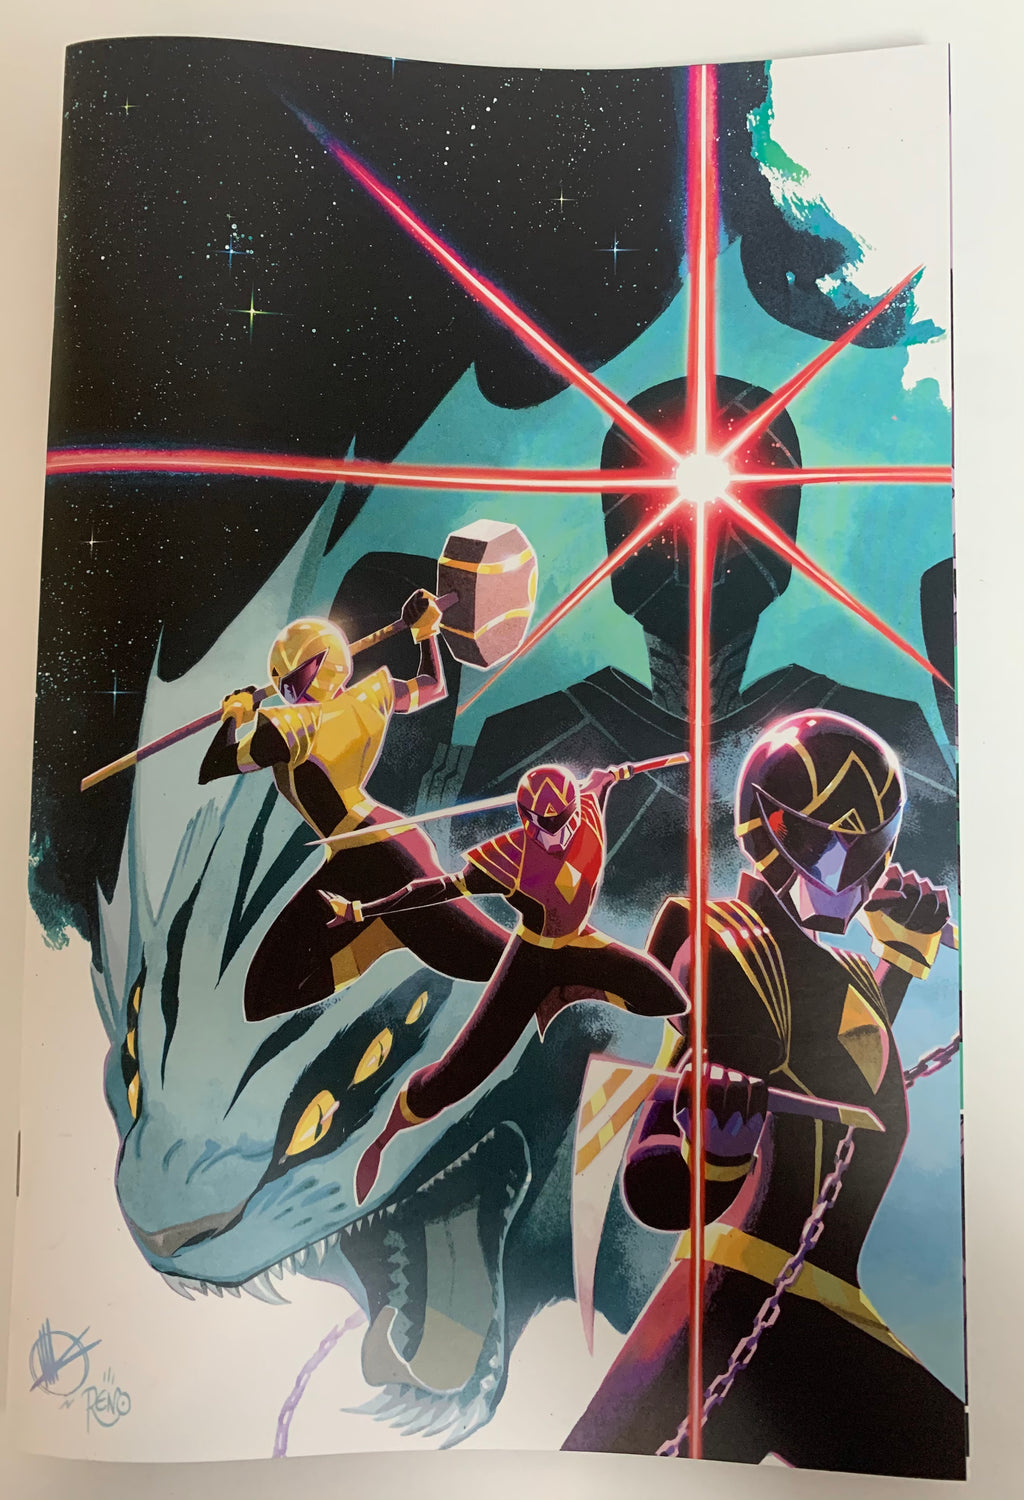 Power Rangers #1 1:100 Scalera variant raw